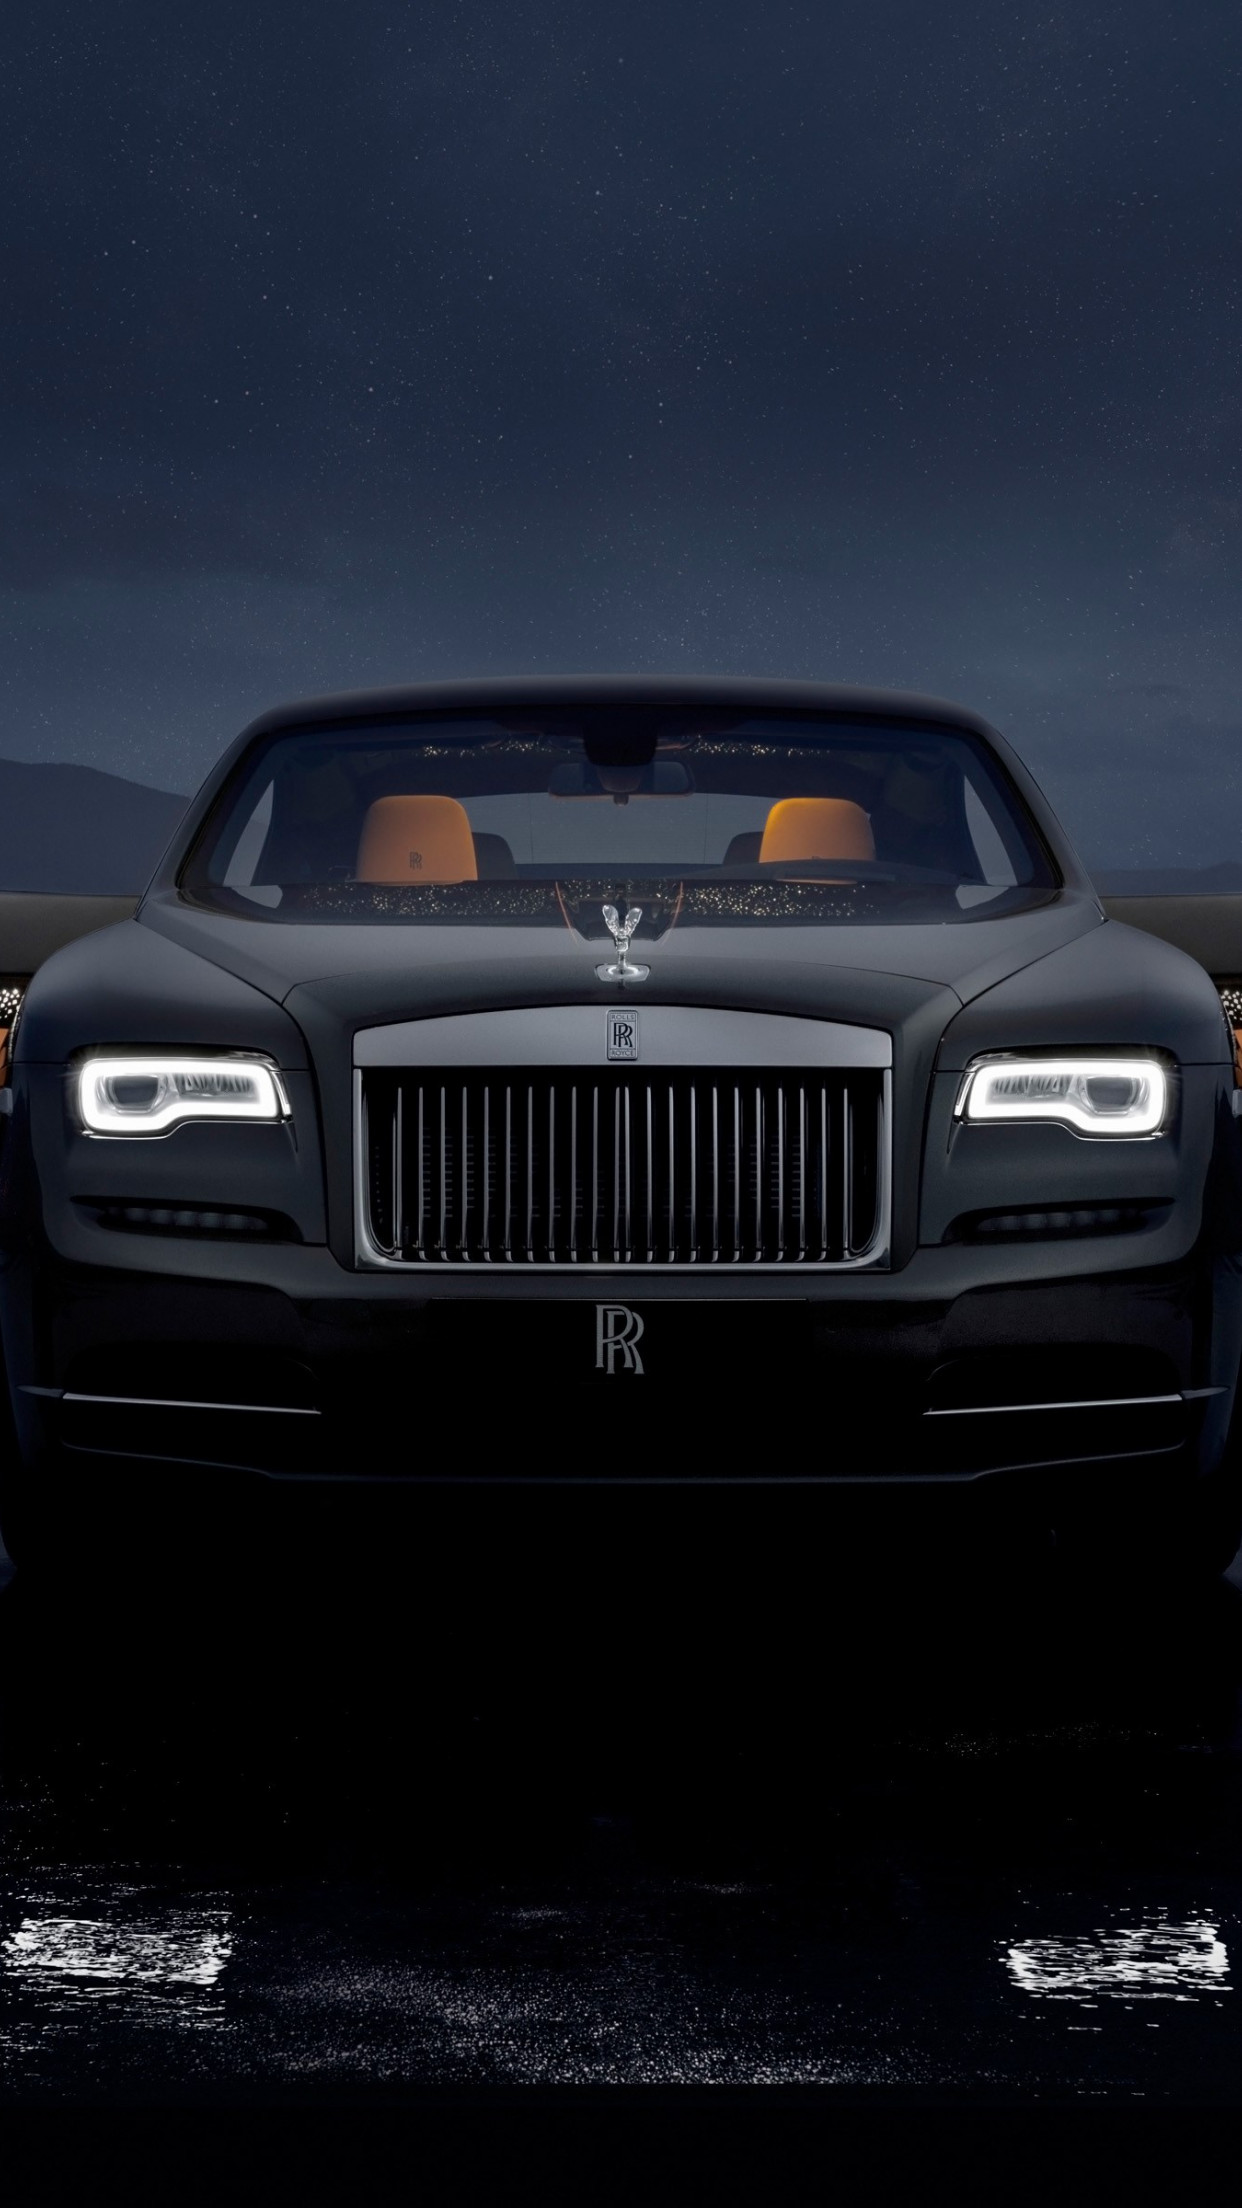 Rolls Royce Wraith Luminary Collection wallpaper 1242x2208